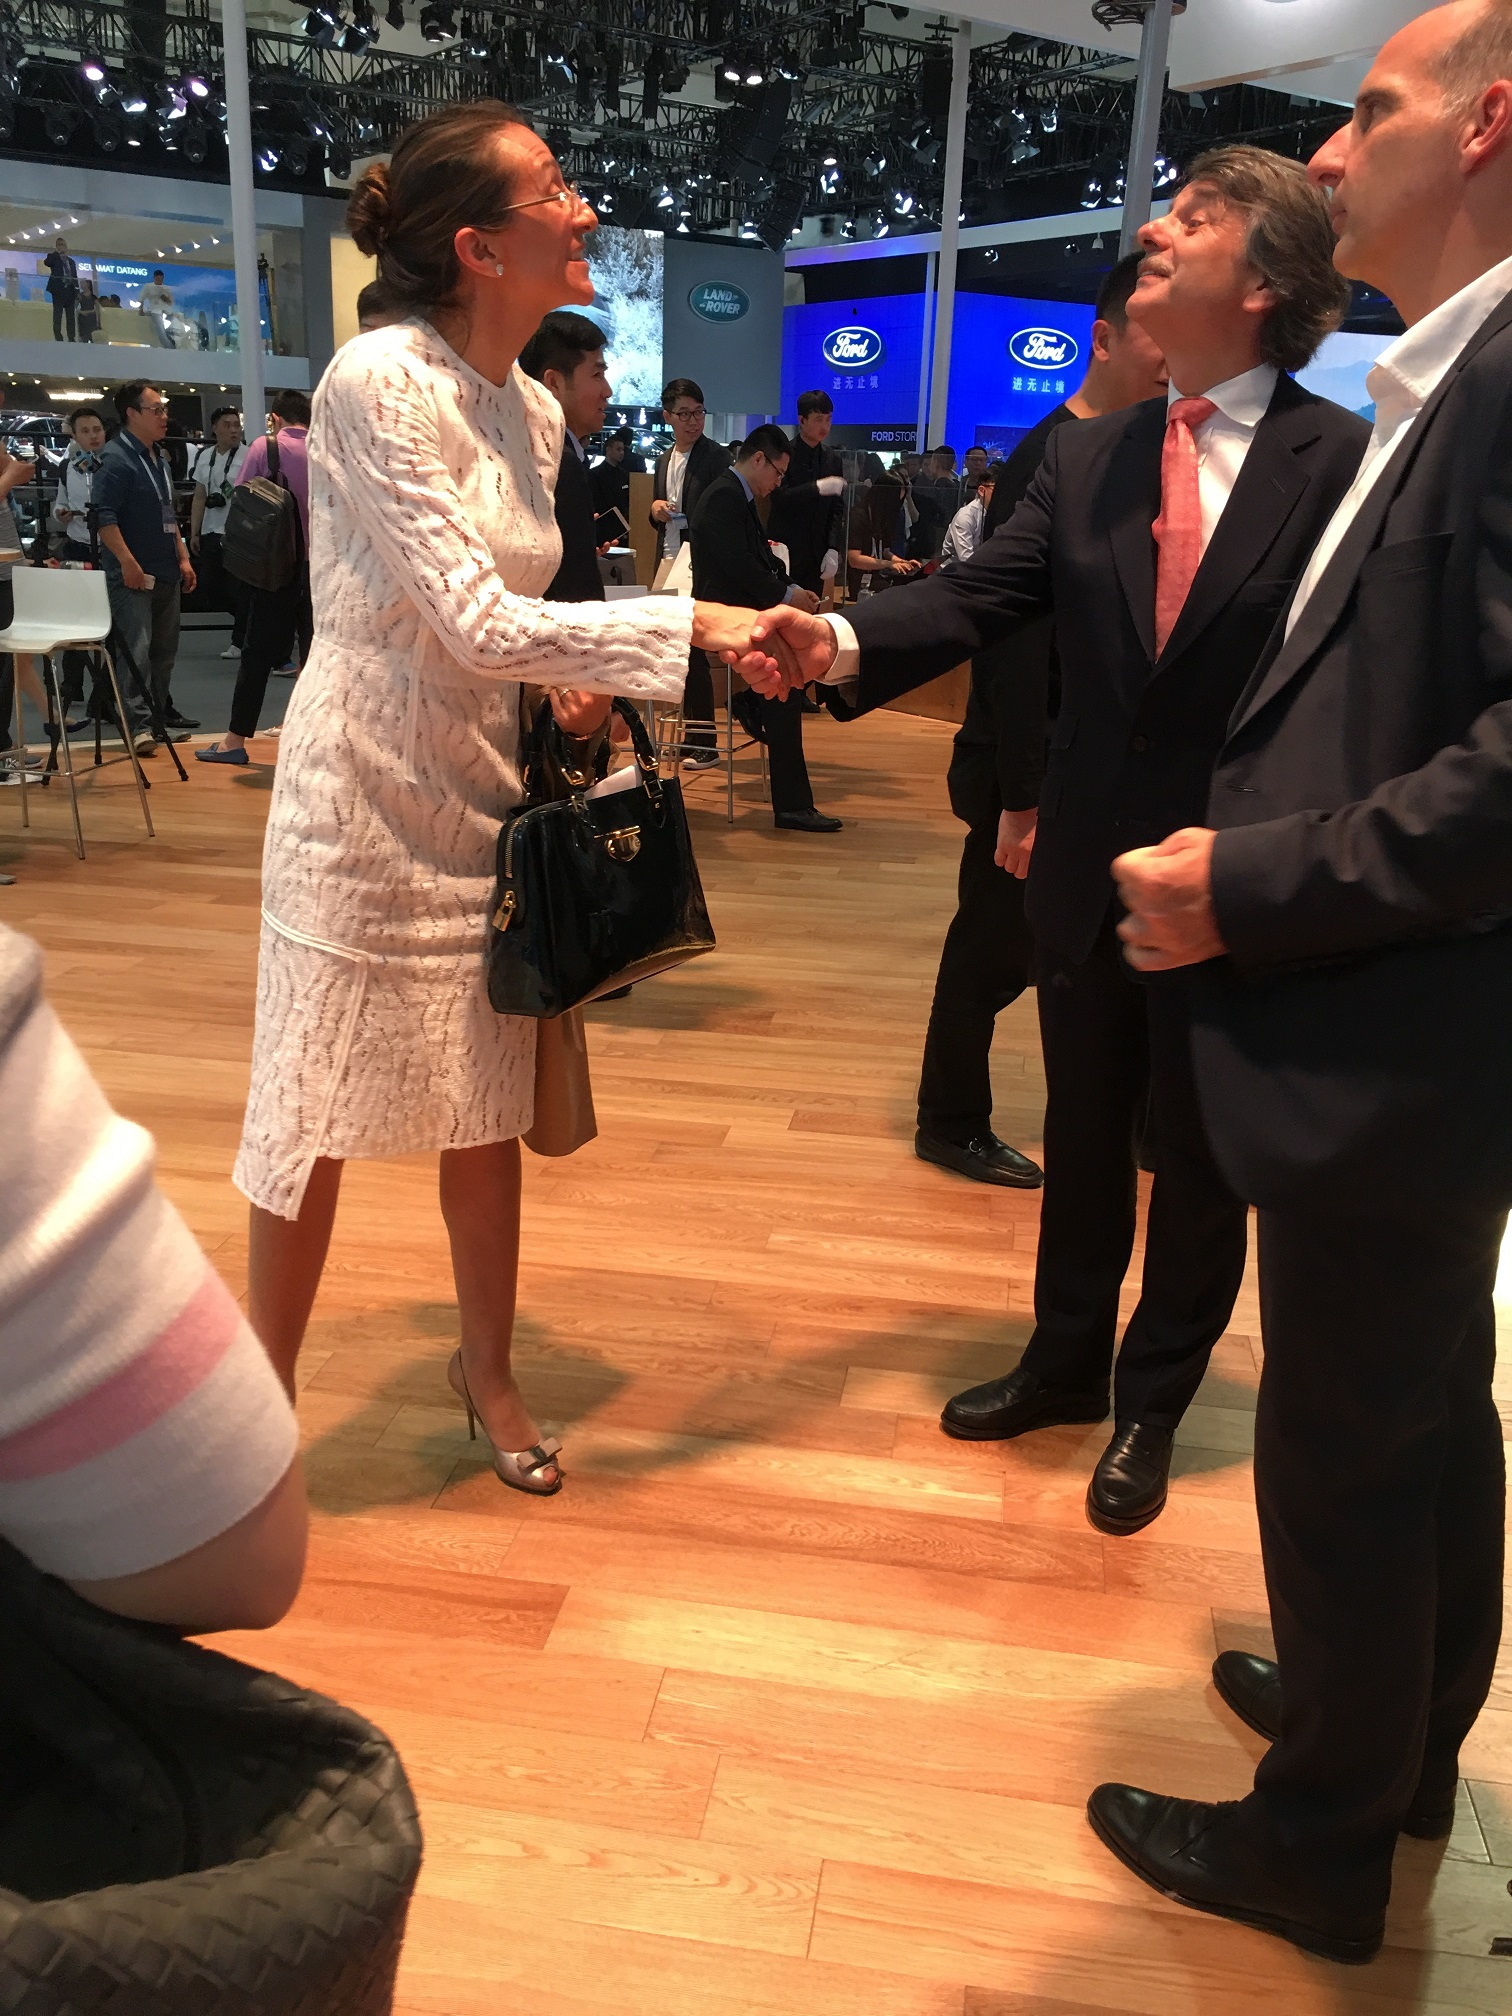 Vanessa Moriel greets Ralf Speth, Global CEO of Jaguar Land Rover.